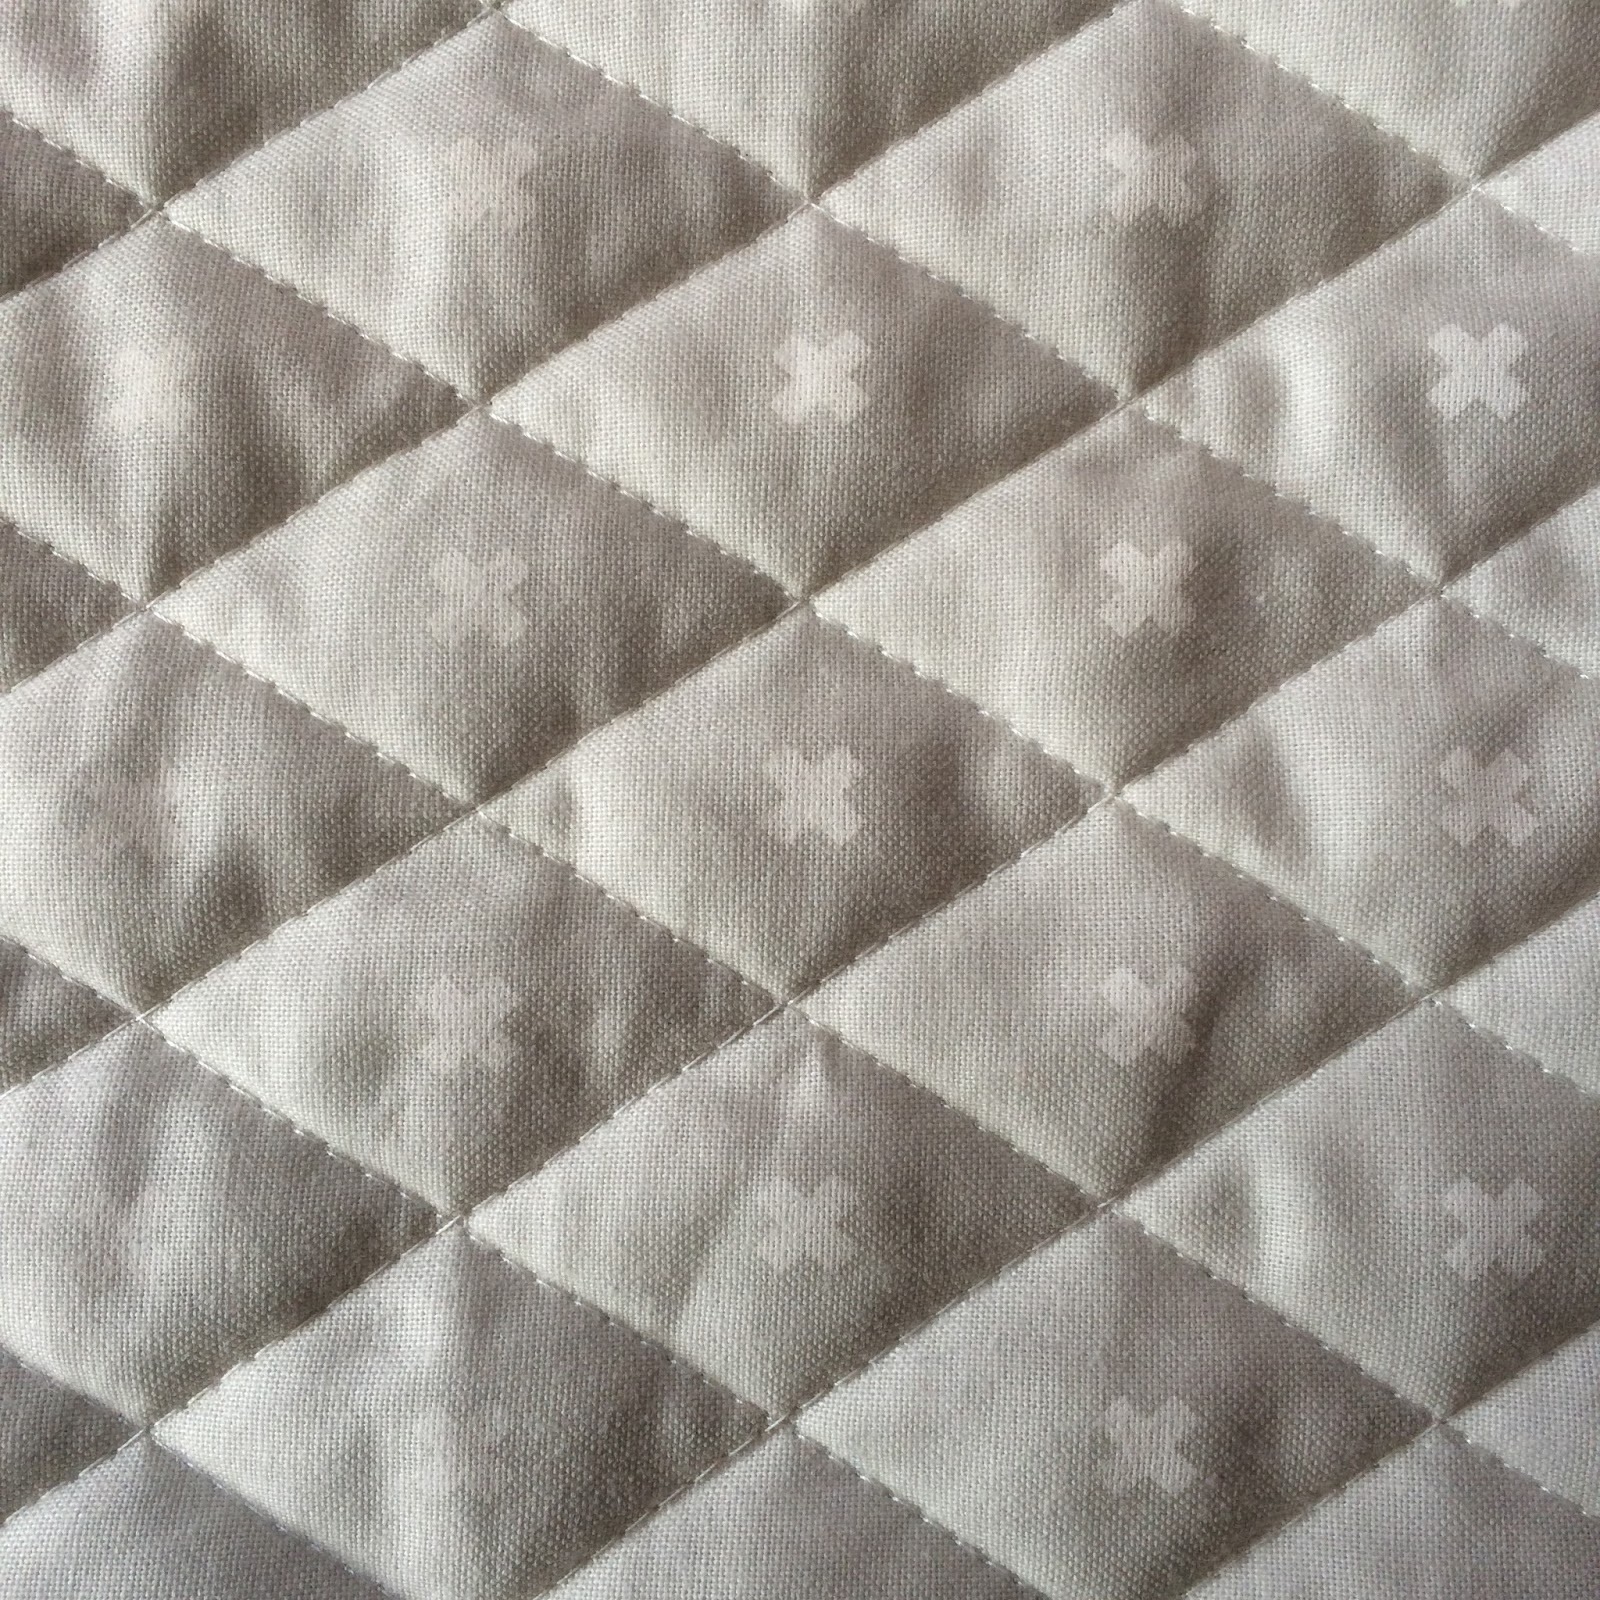 cross hatch quilting tutorial / charm about you : crosshatch quilting - Adamdwight.com